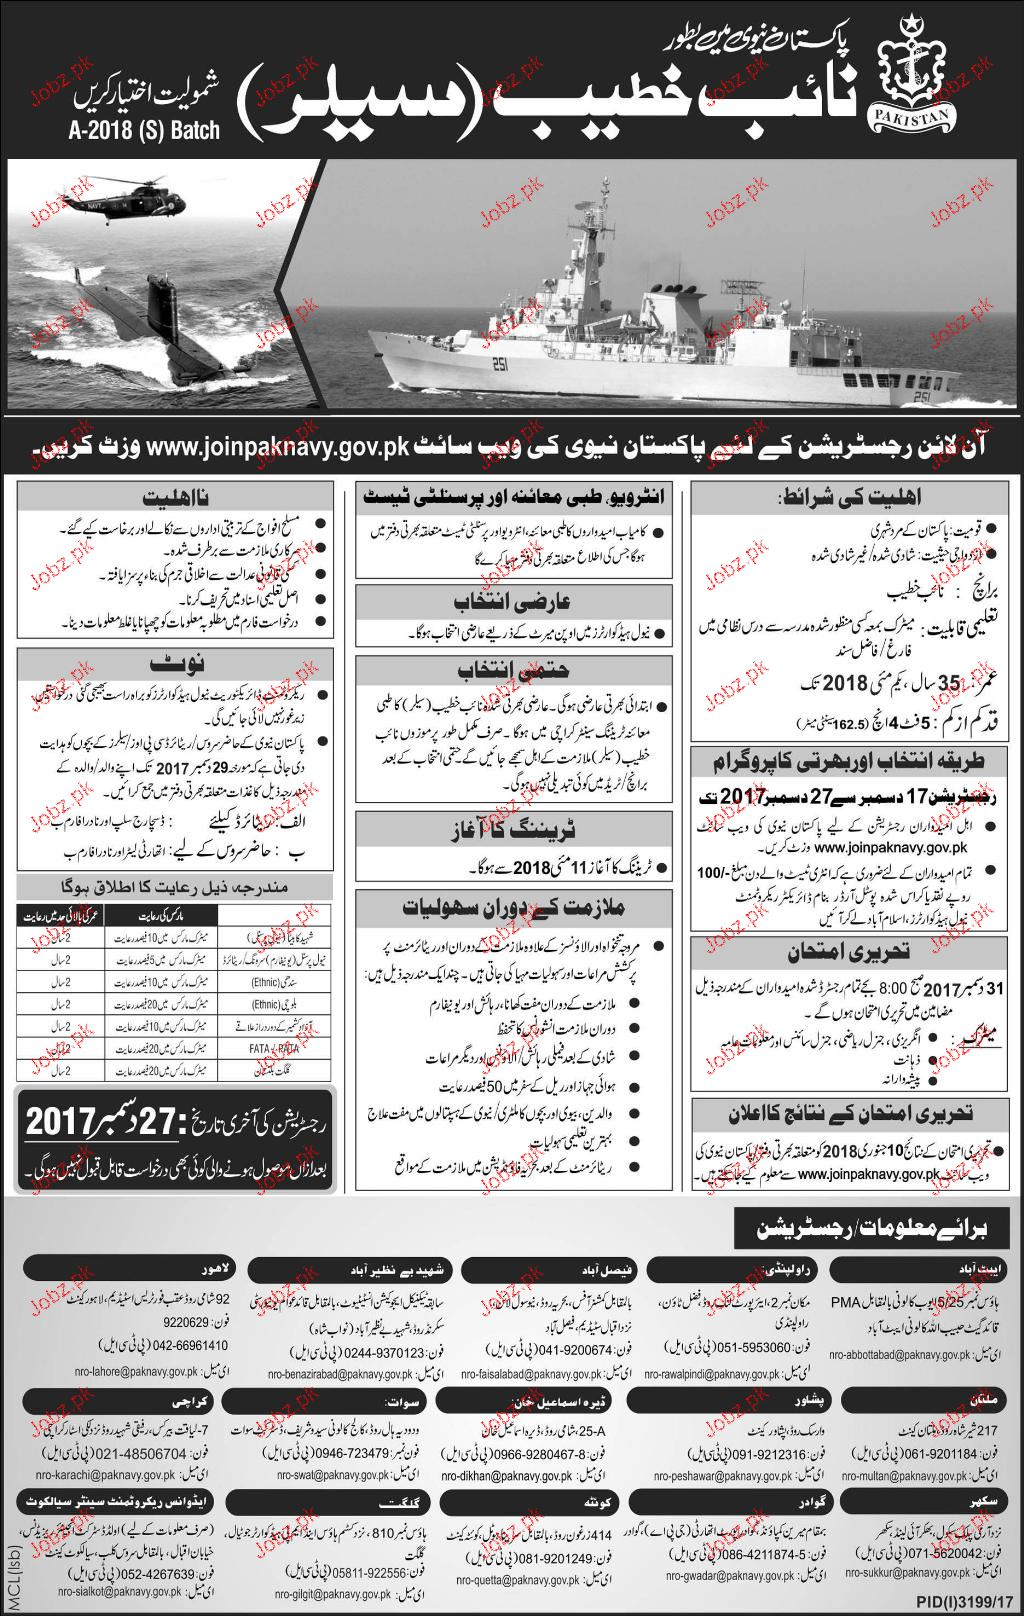 Recruitment of Naib Khateeb Sailors in Pakistan Navy